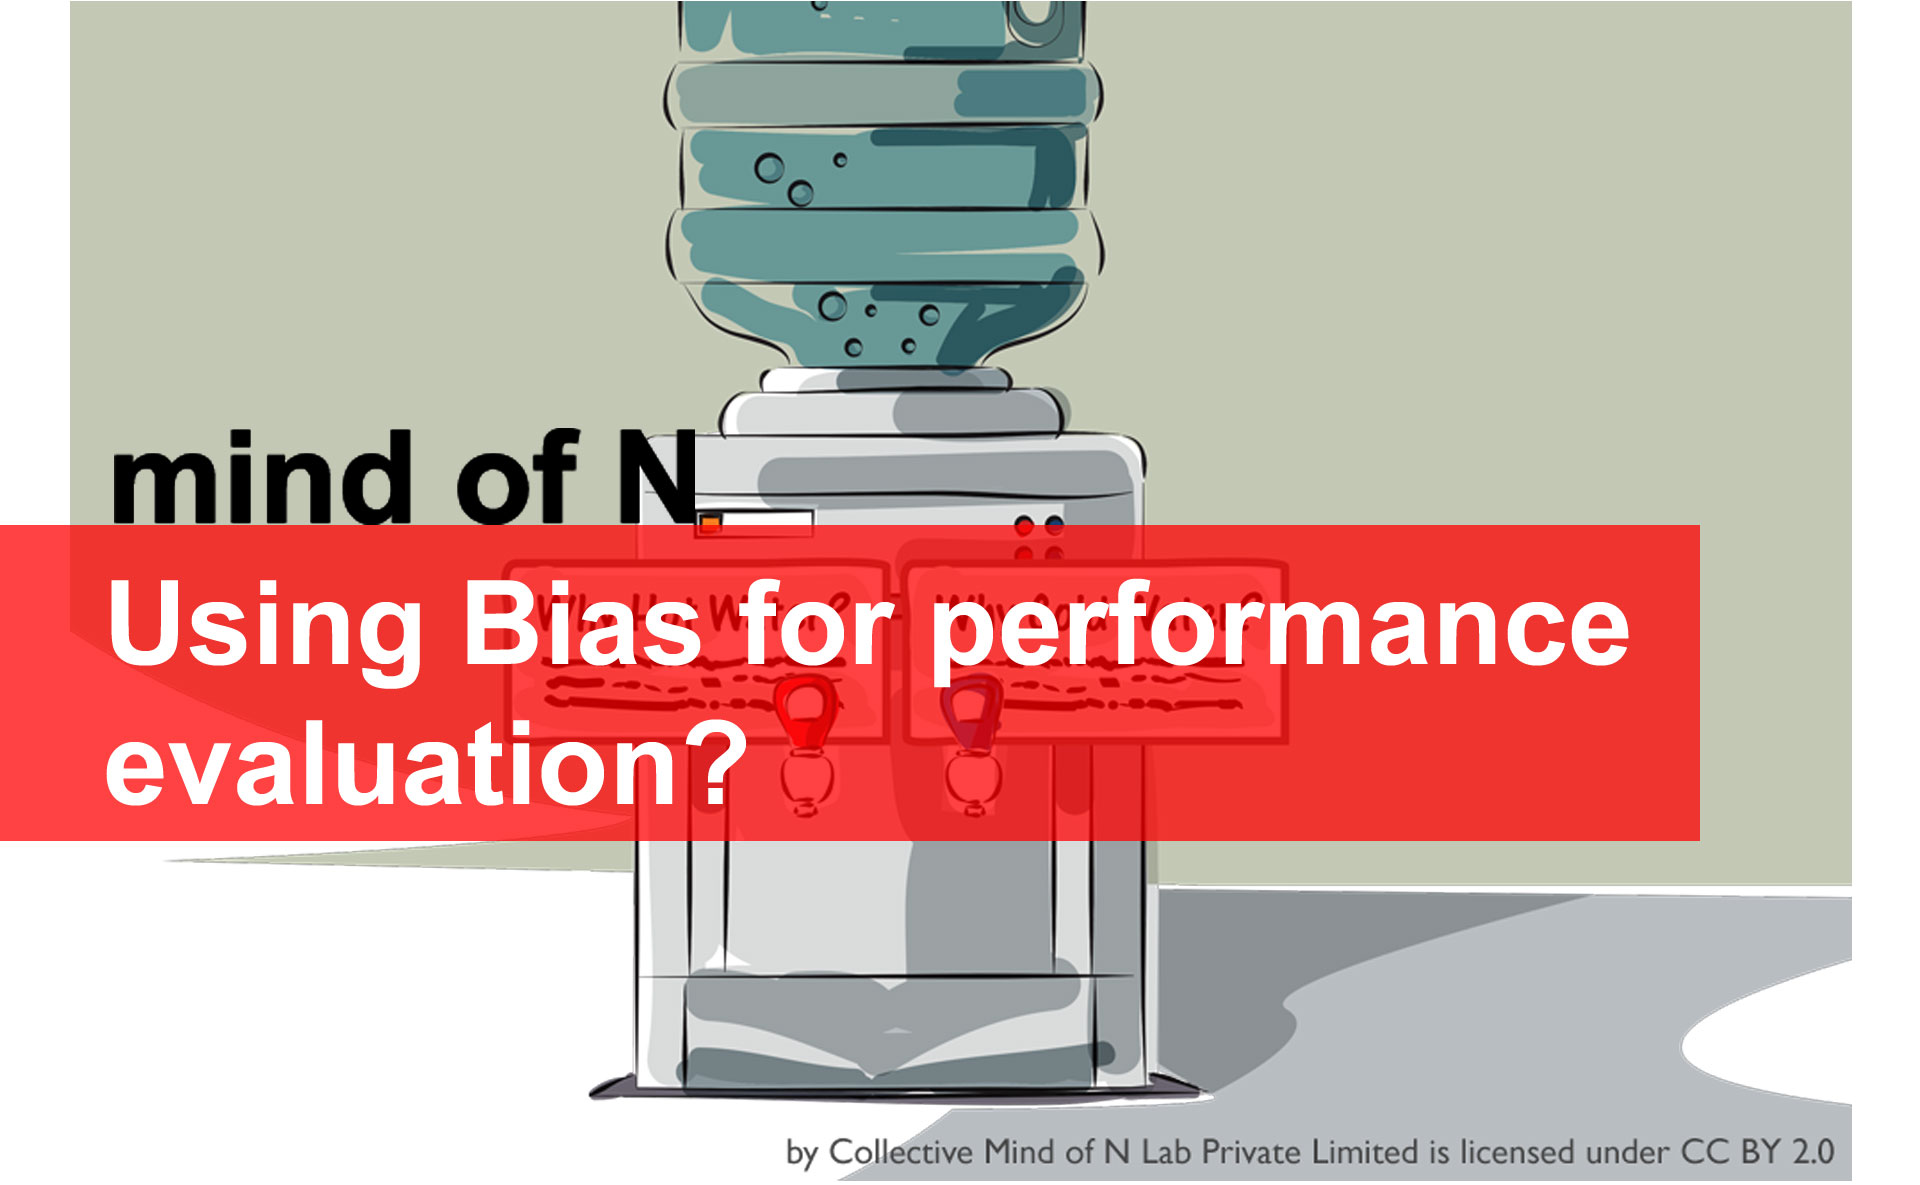 Implicit Bias and Performance Evaluation